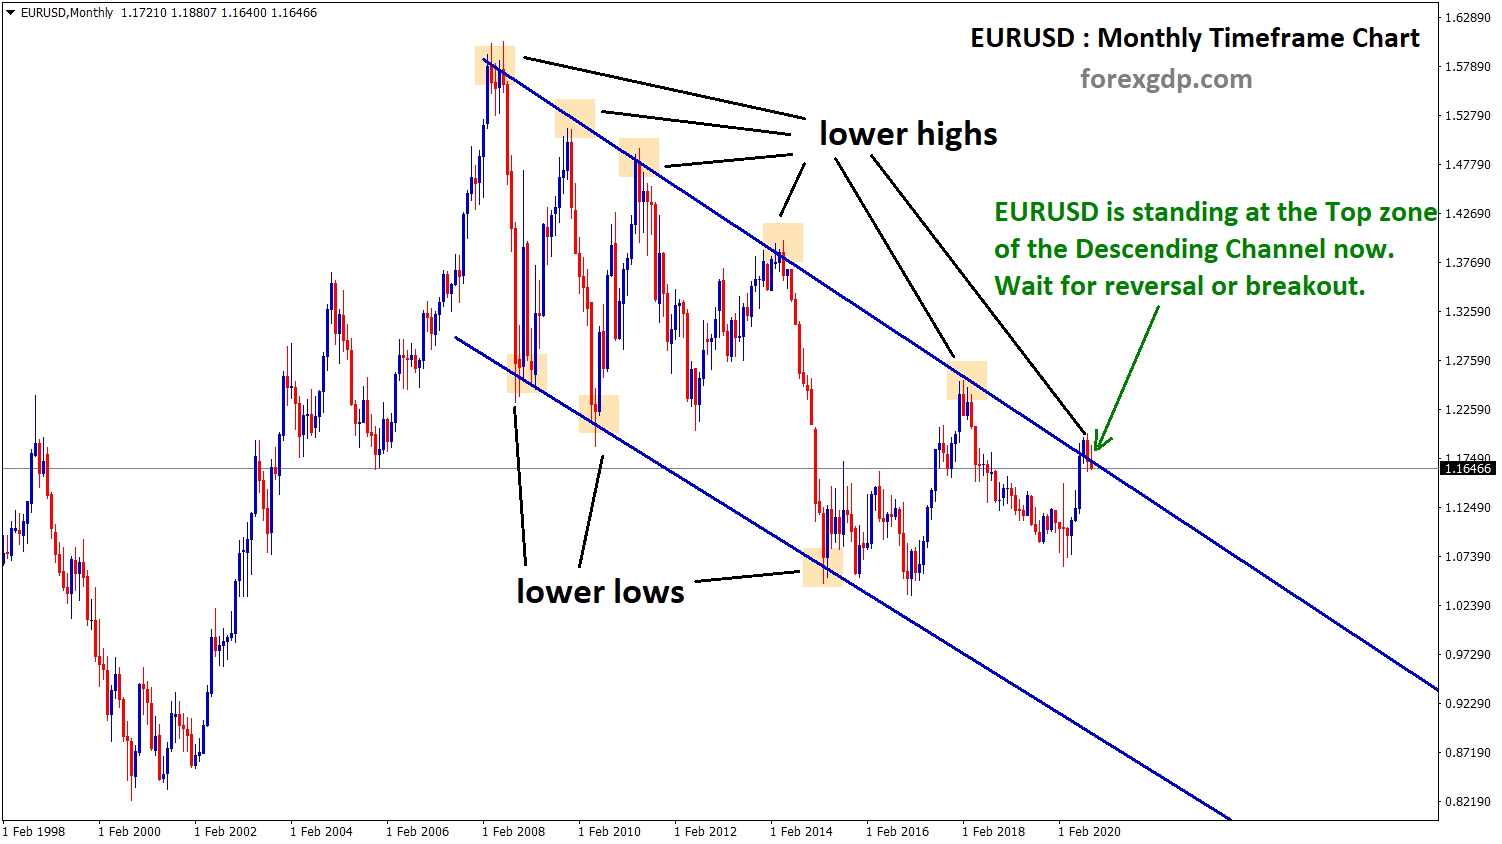 eurusd at the top of descending channel in monthly chart